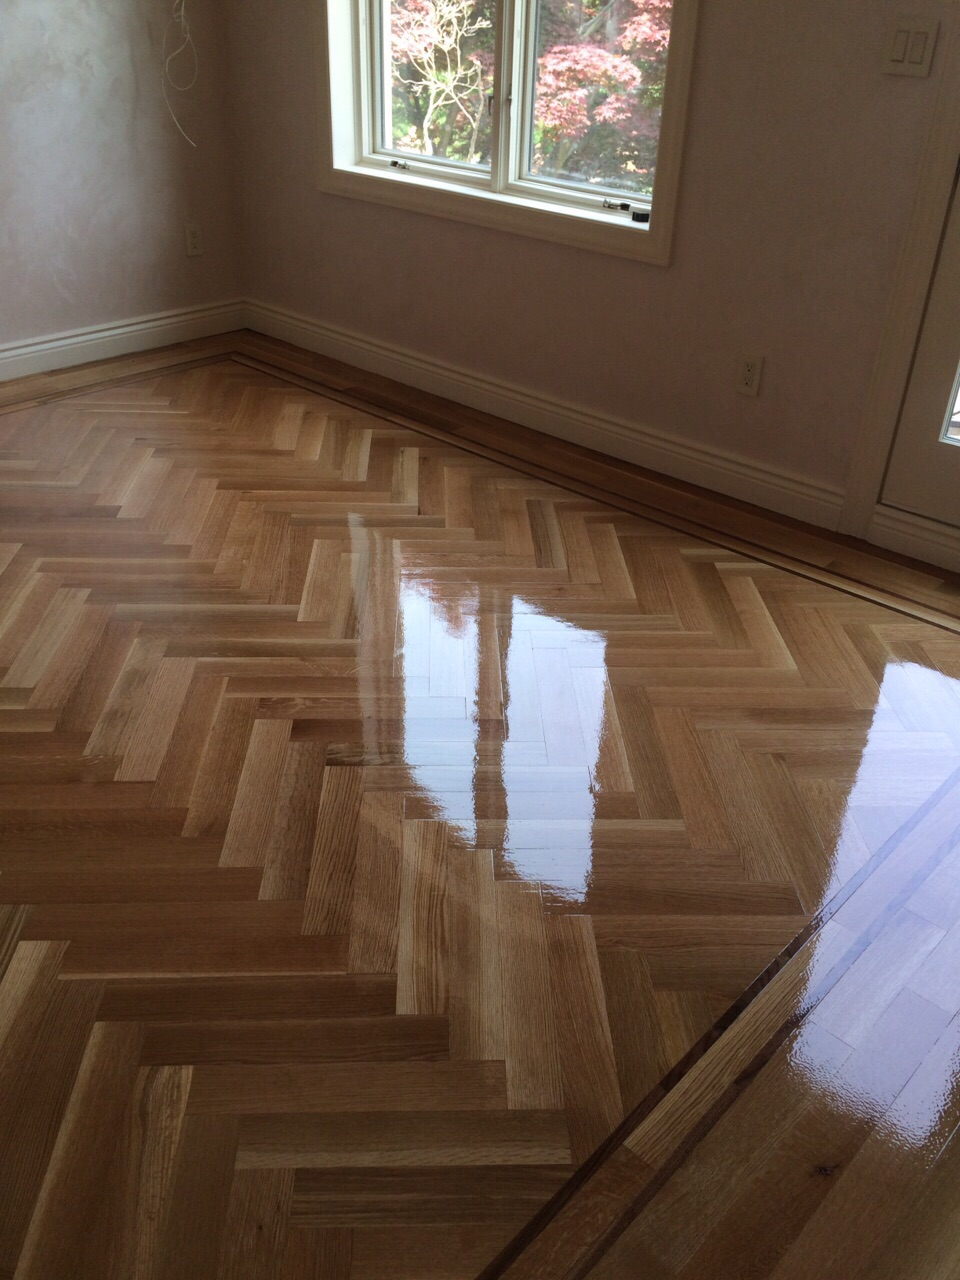 Floors queens flooring queens wood flooring queens for Hardwood floors queens ny